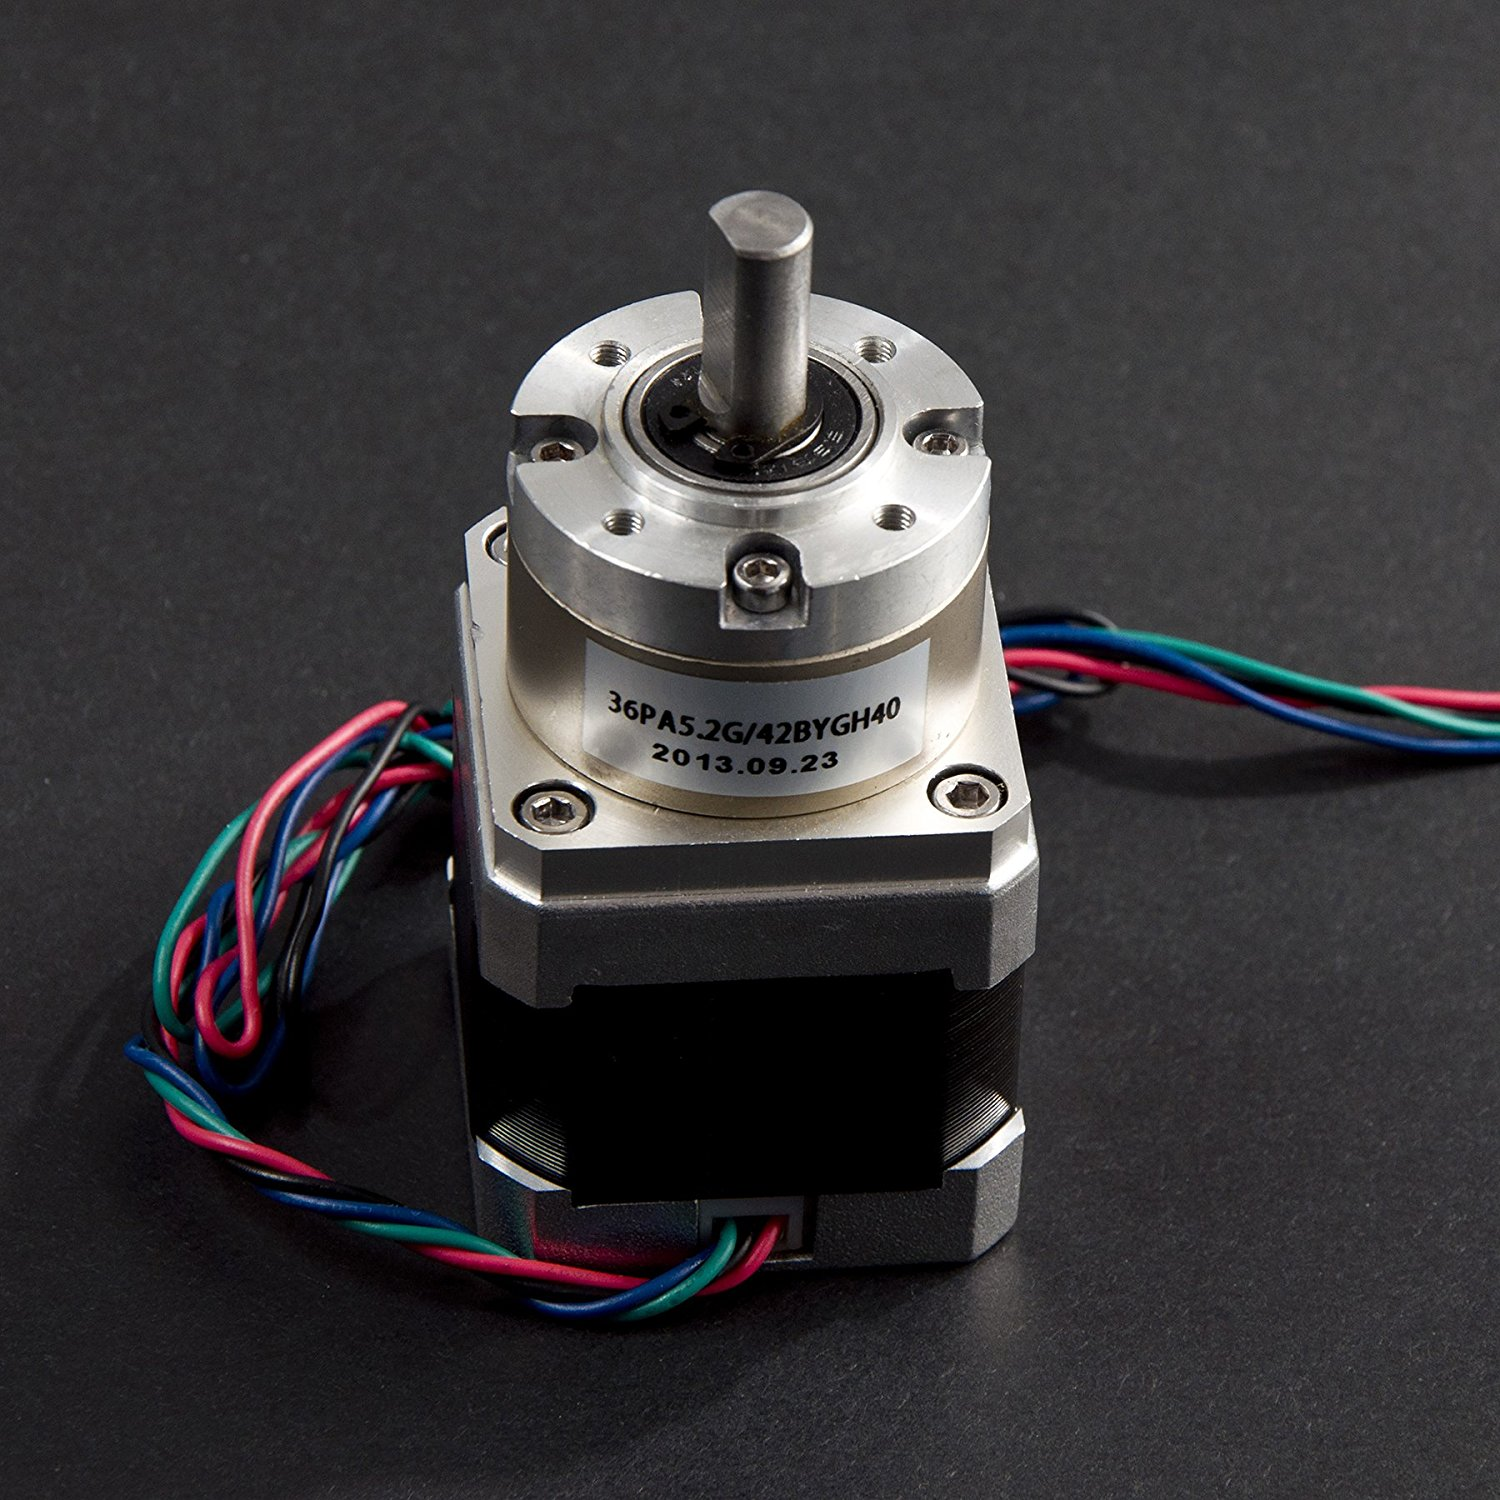 Angelelec DIY Open Sources Stepper Motor, 42 Stepper Motor (Planet Gear Stepper Motor), A Stepper Motor With a Gear BOX, Using Conventional 8MM Diameter D Output Shaft, Model 36PA5.2G/42BYG40-160-4A.